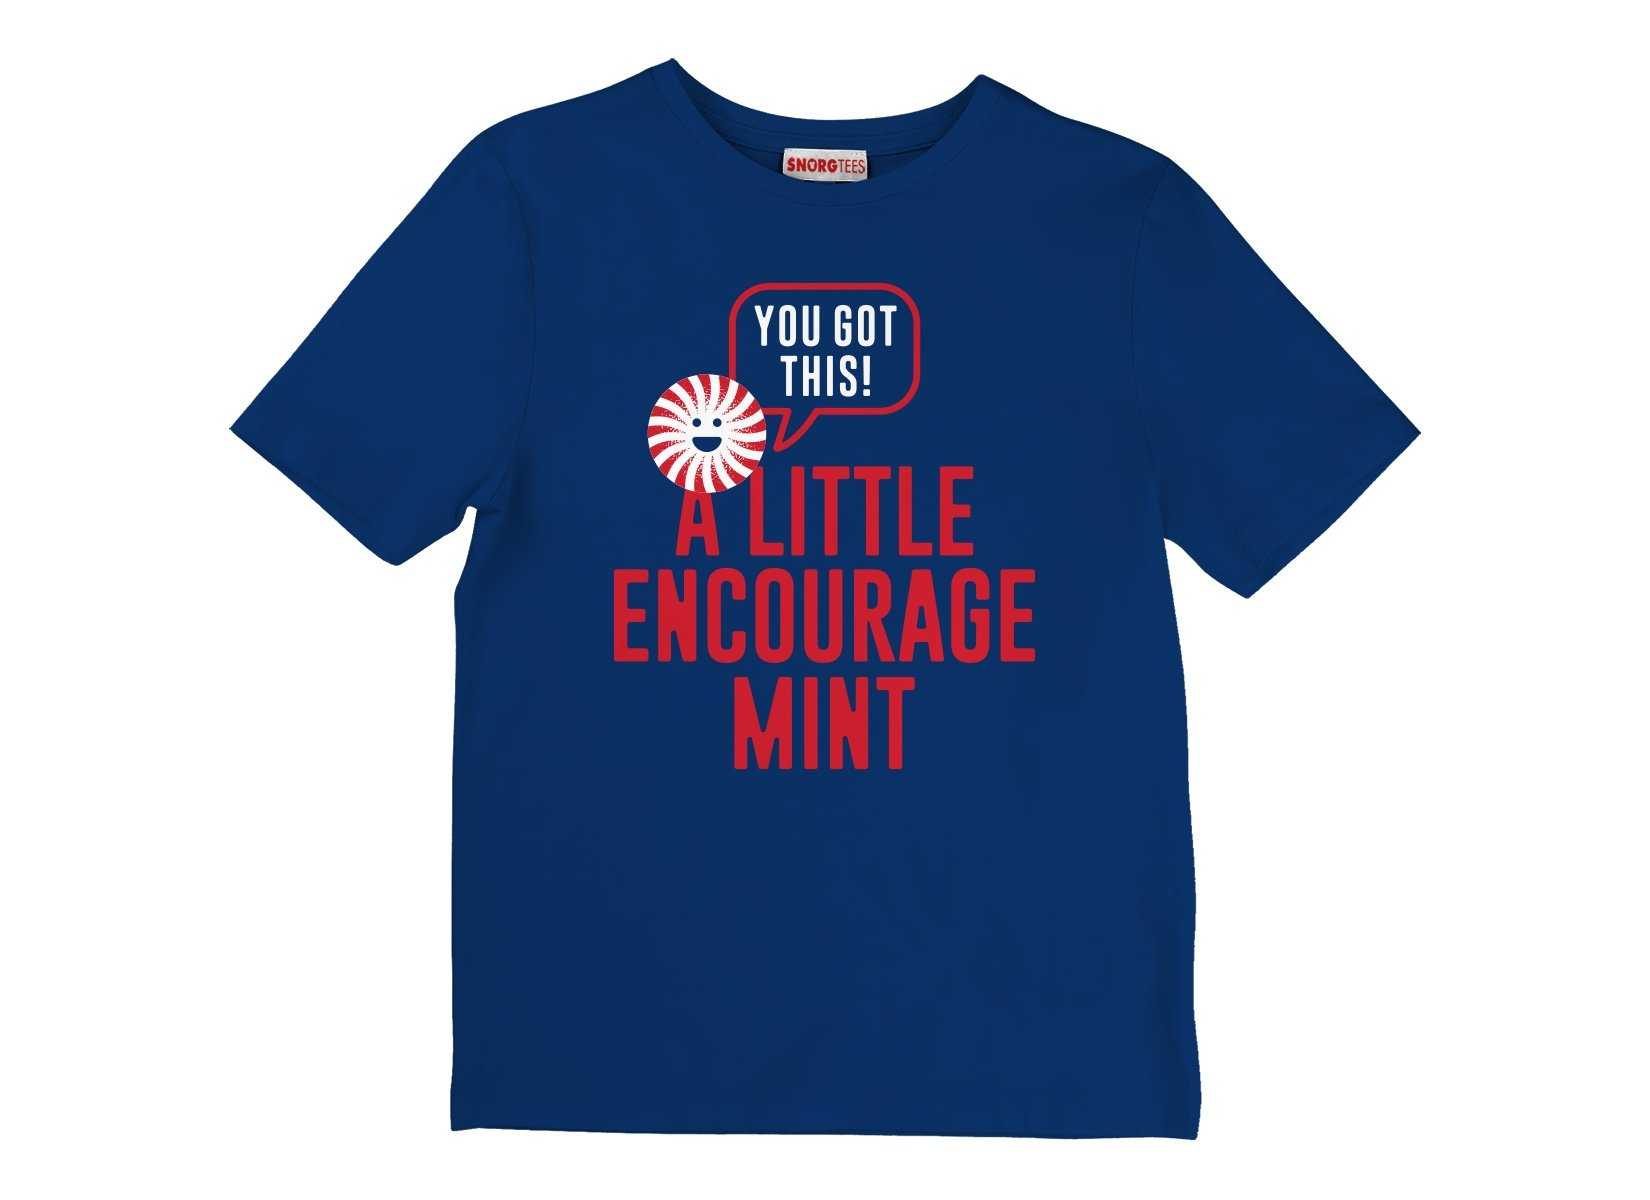 A Little Encourage Mint on Kids T-Shirt